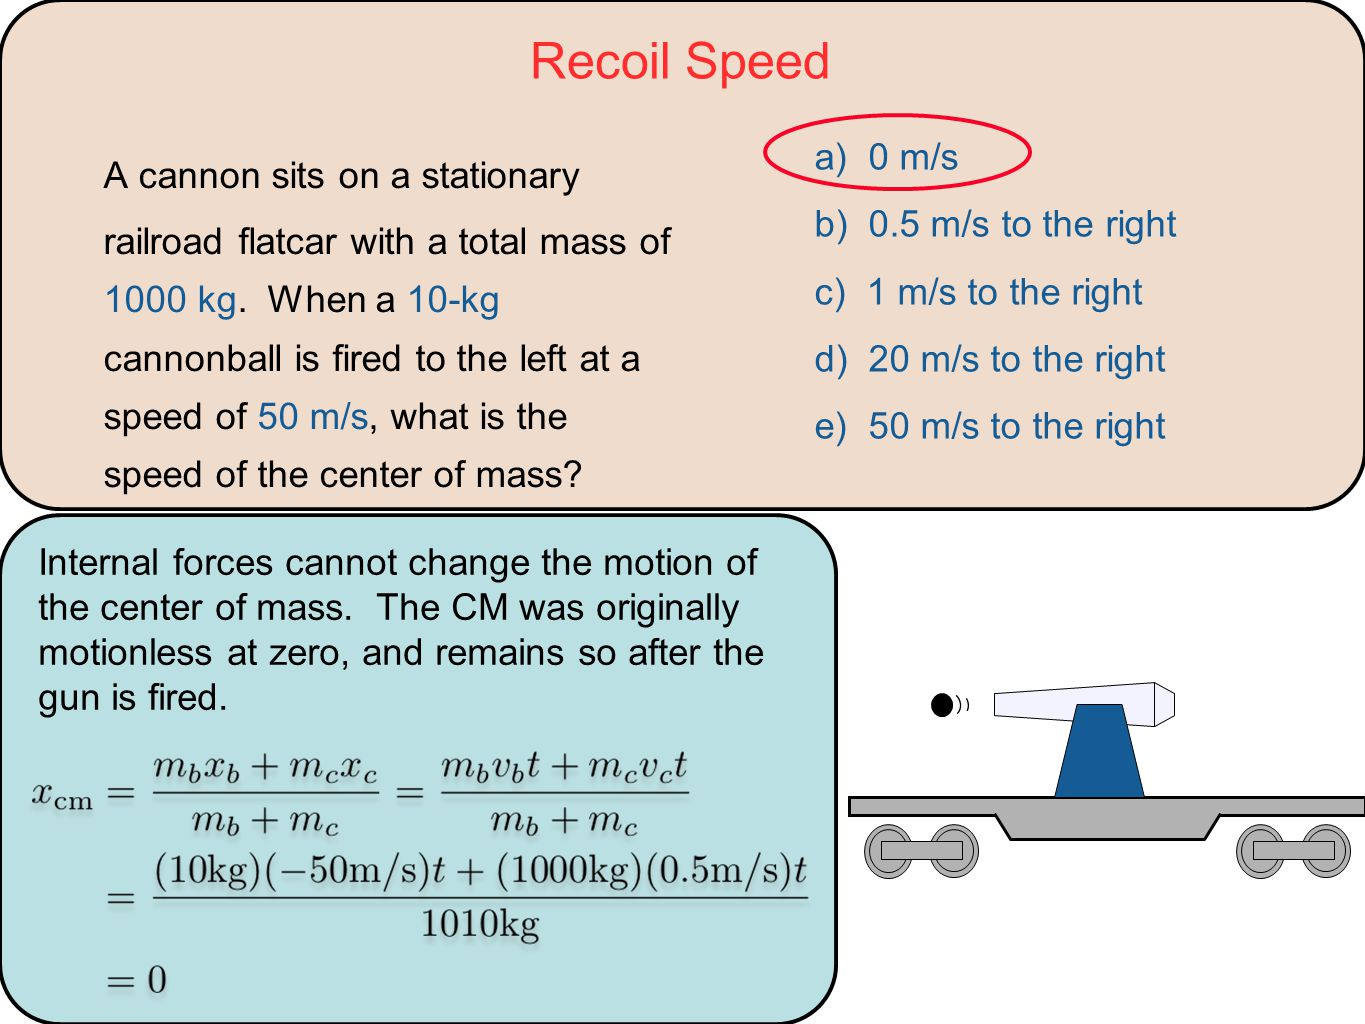 Recoil Speed